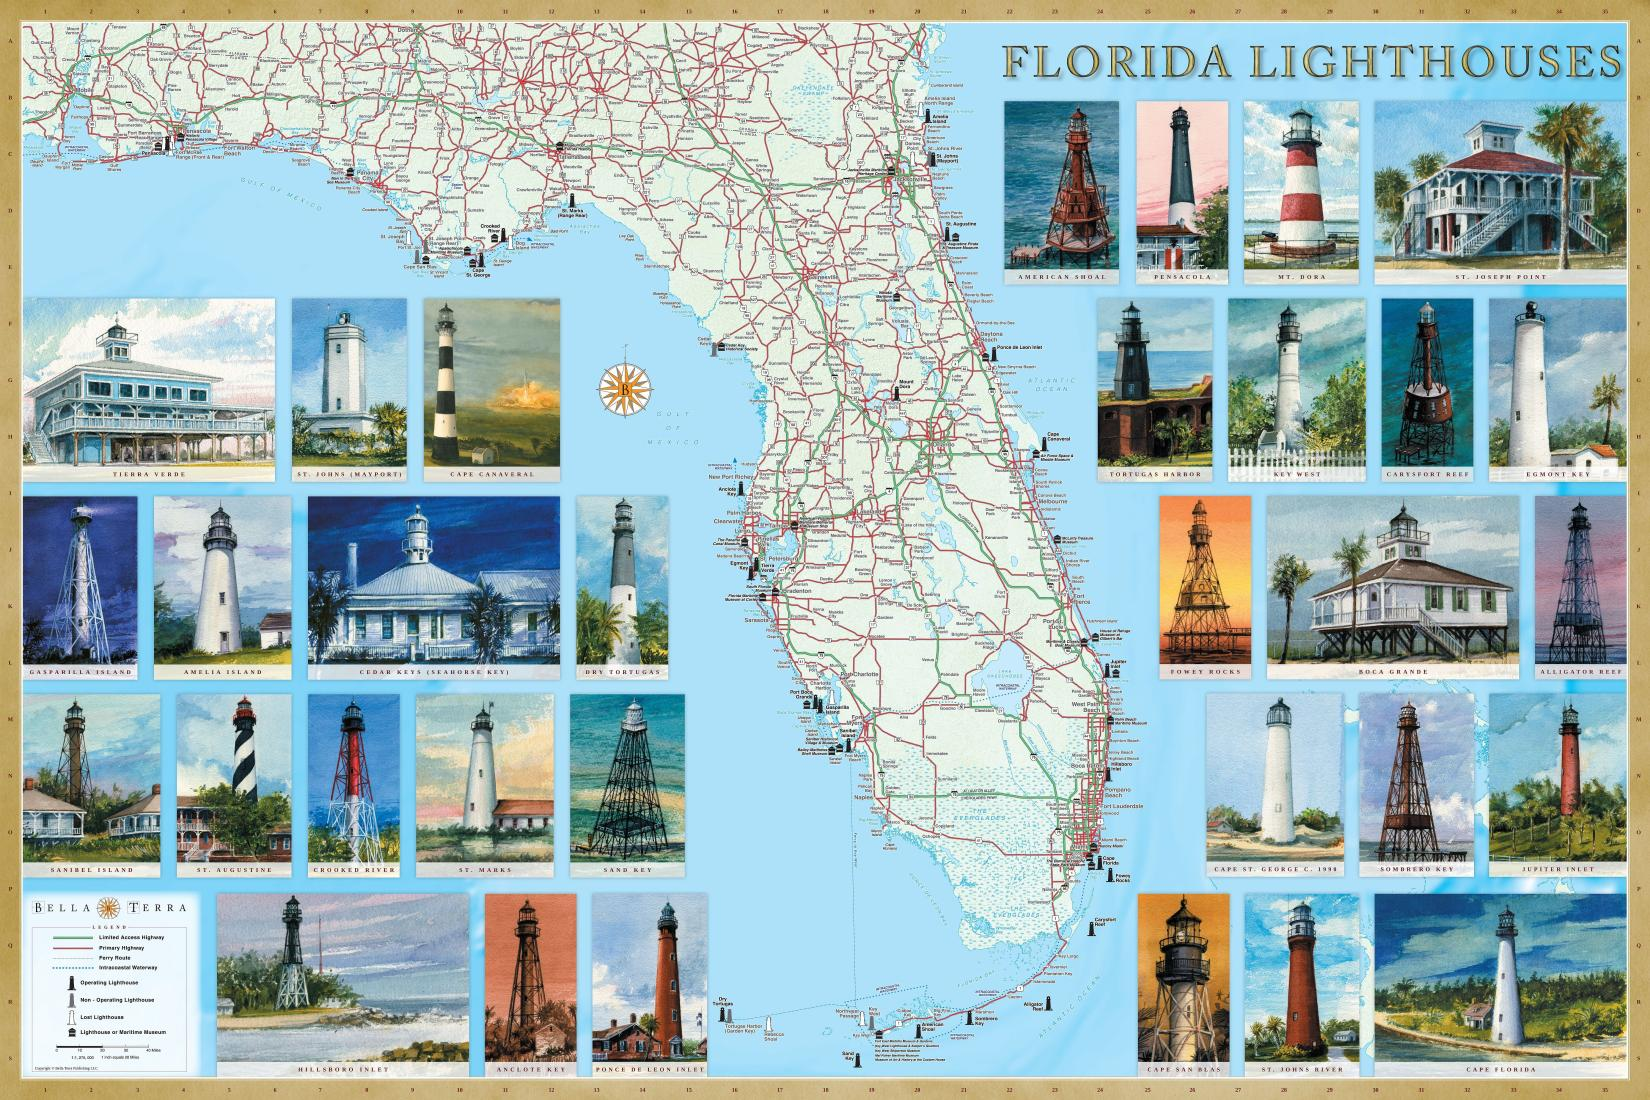 Florida Lighthouses Map Laminated Poster By Bella Terra Publishing LLC - Giant world map poster laminated